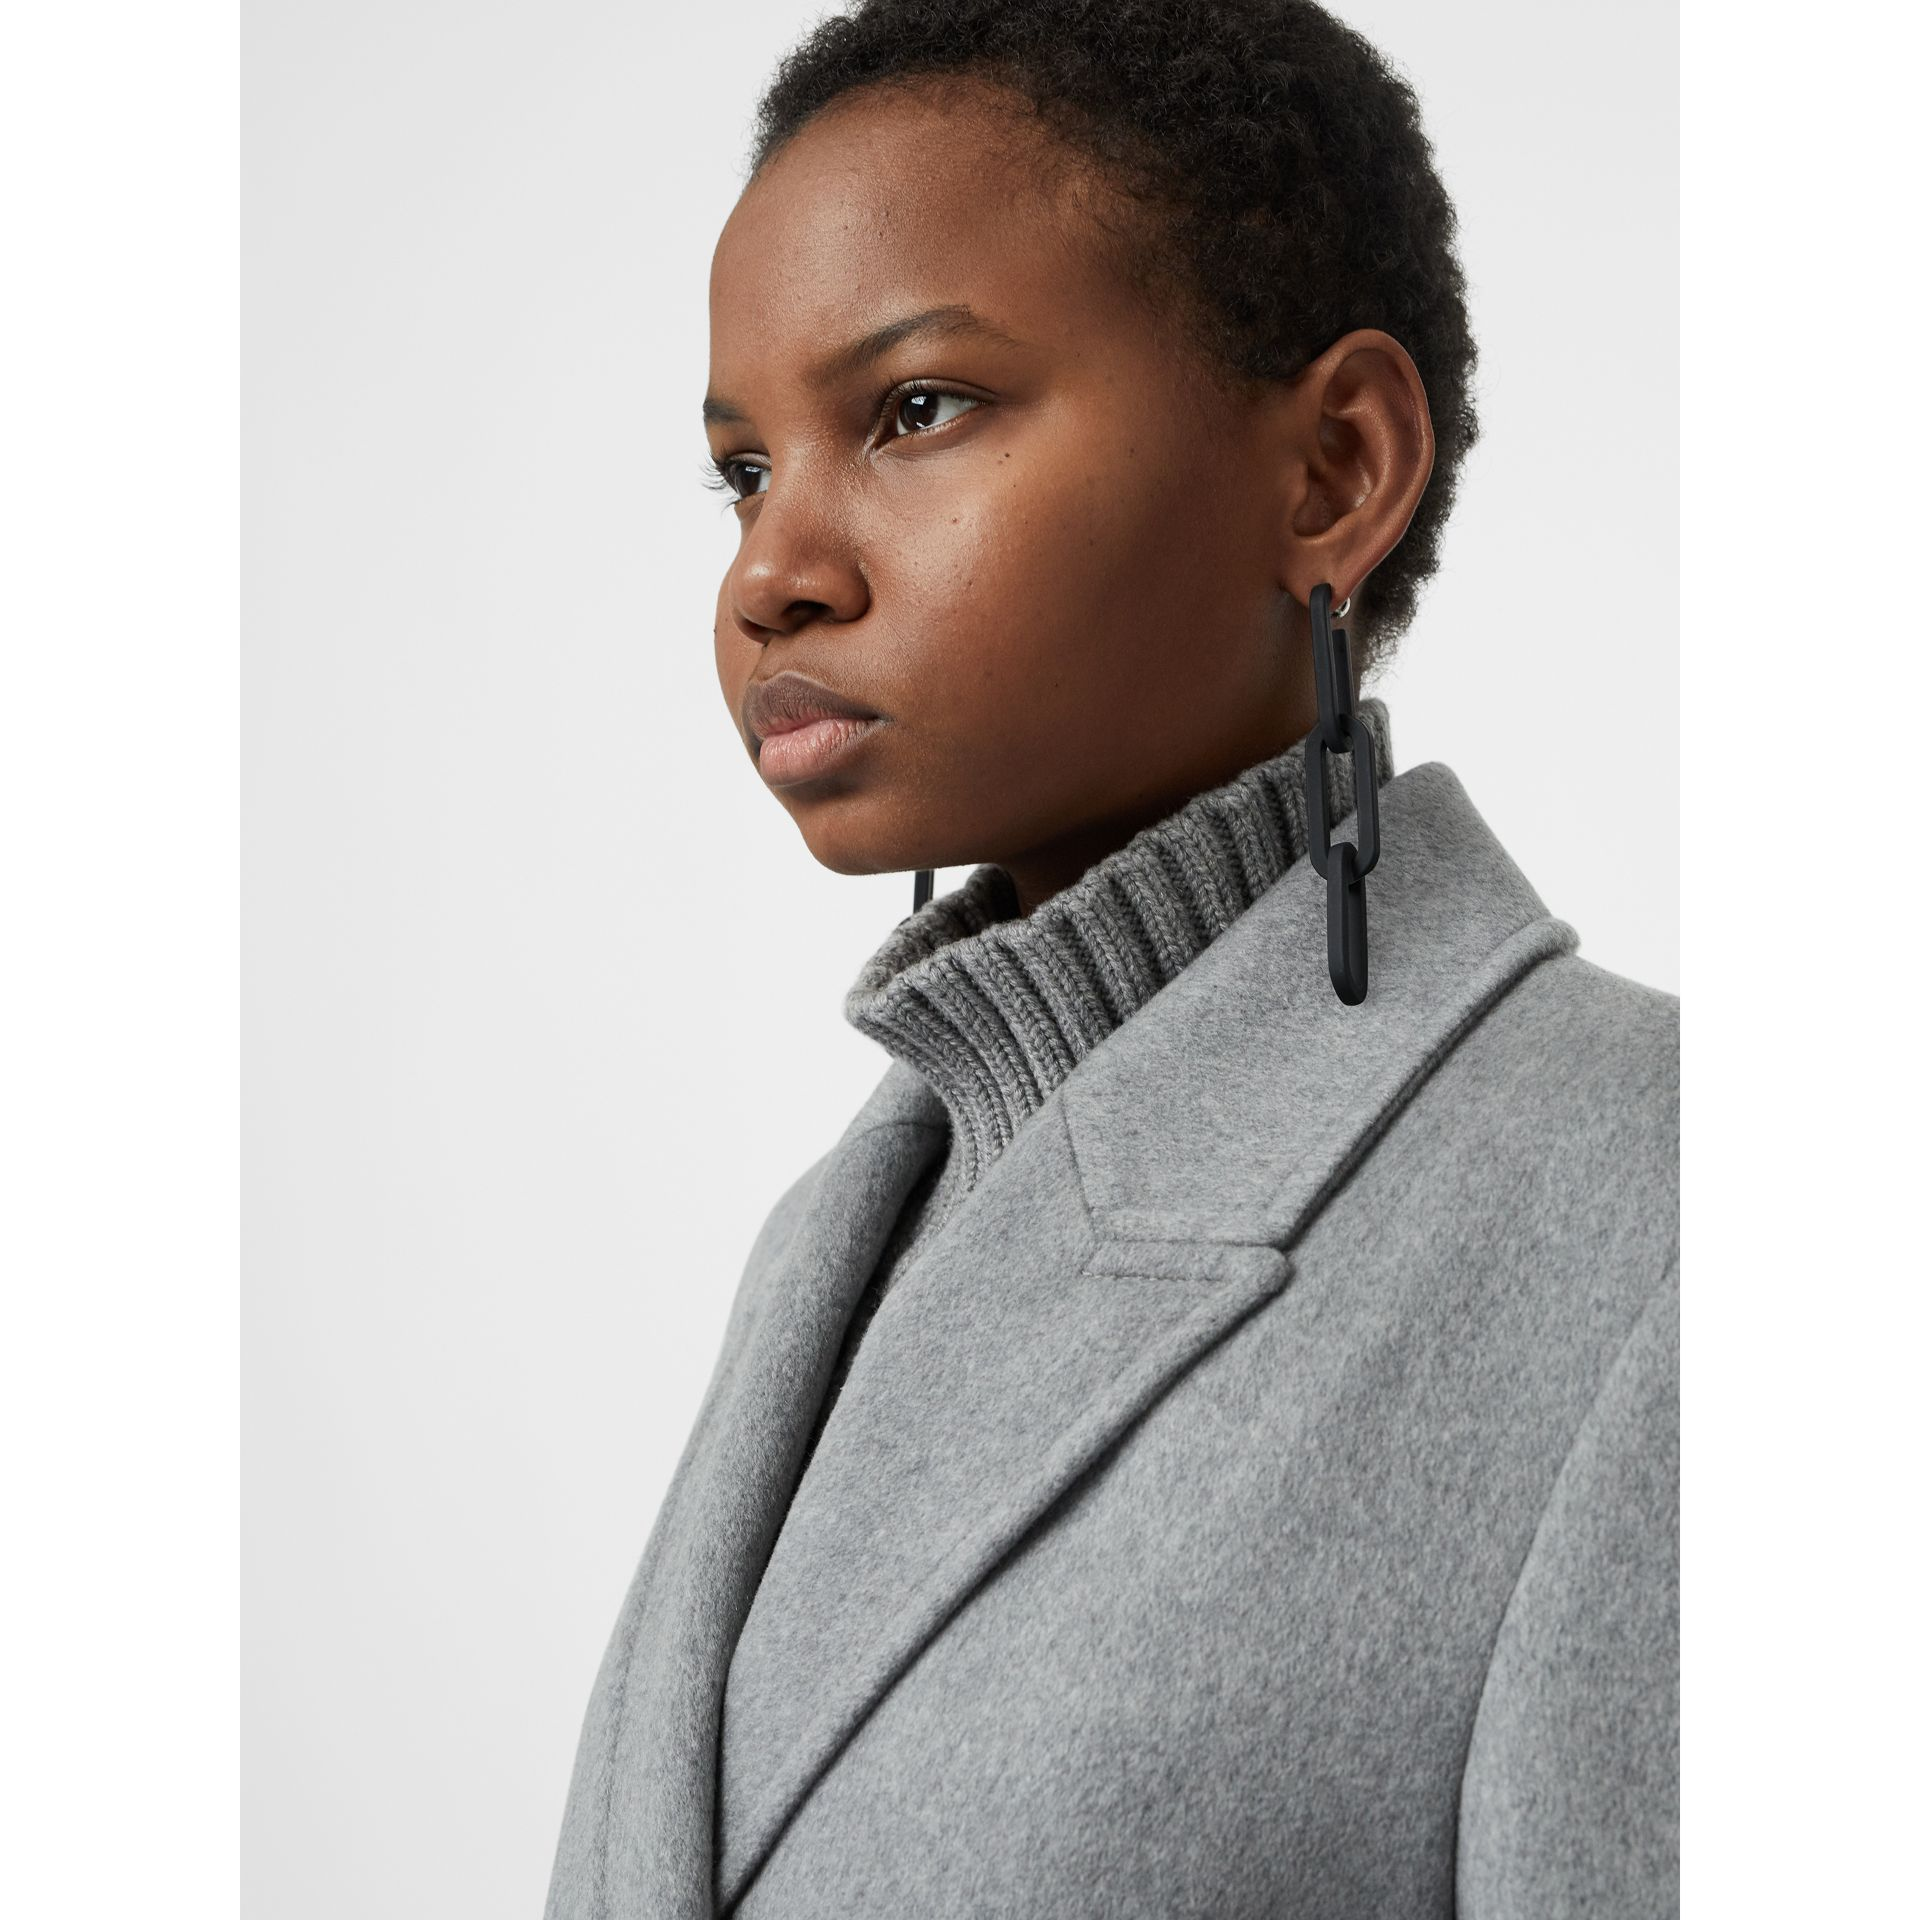 Rubberised Link Drop Earrings in Black - Women | Burberry Australia - gallery image 2